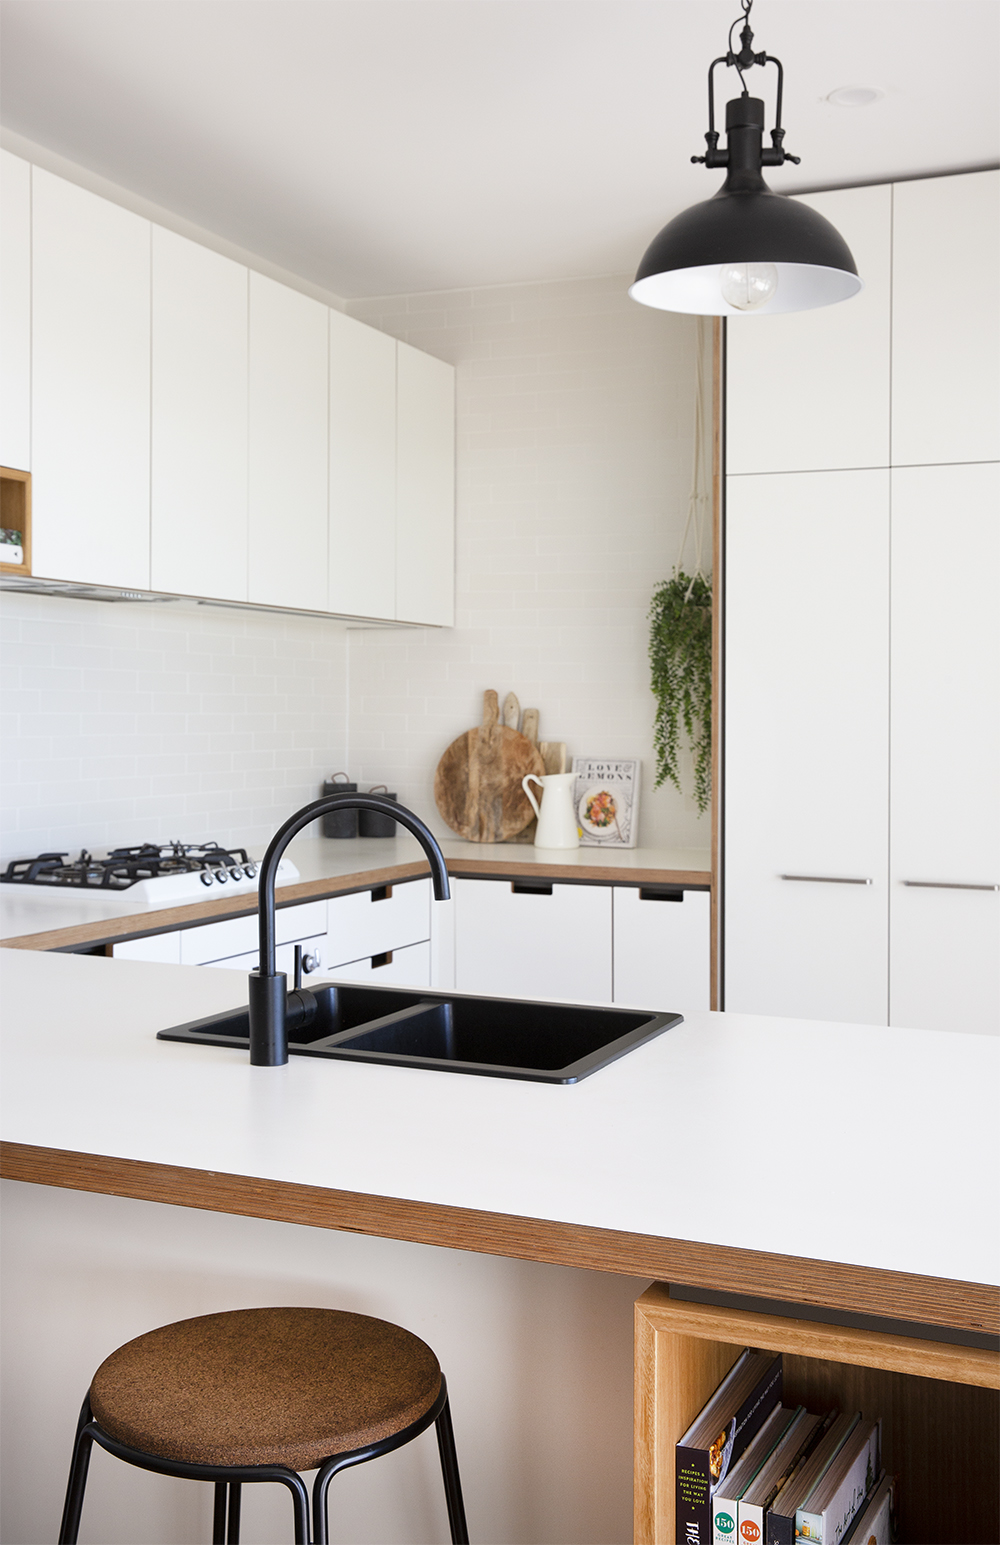 Cantilever K3 Kitchen specified by Black Arrow Co (7).jpg